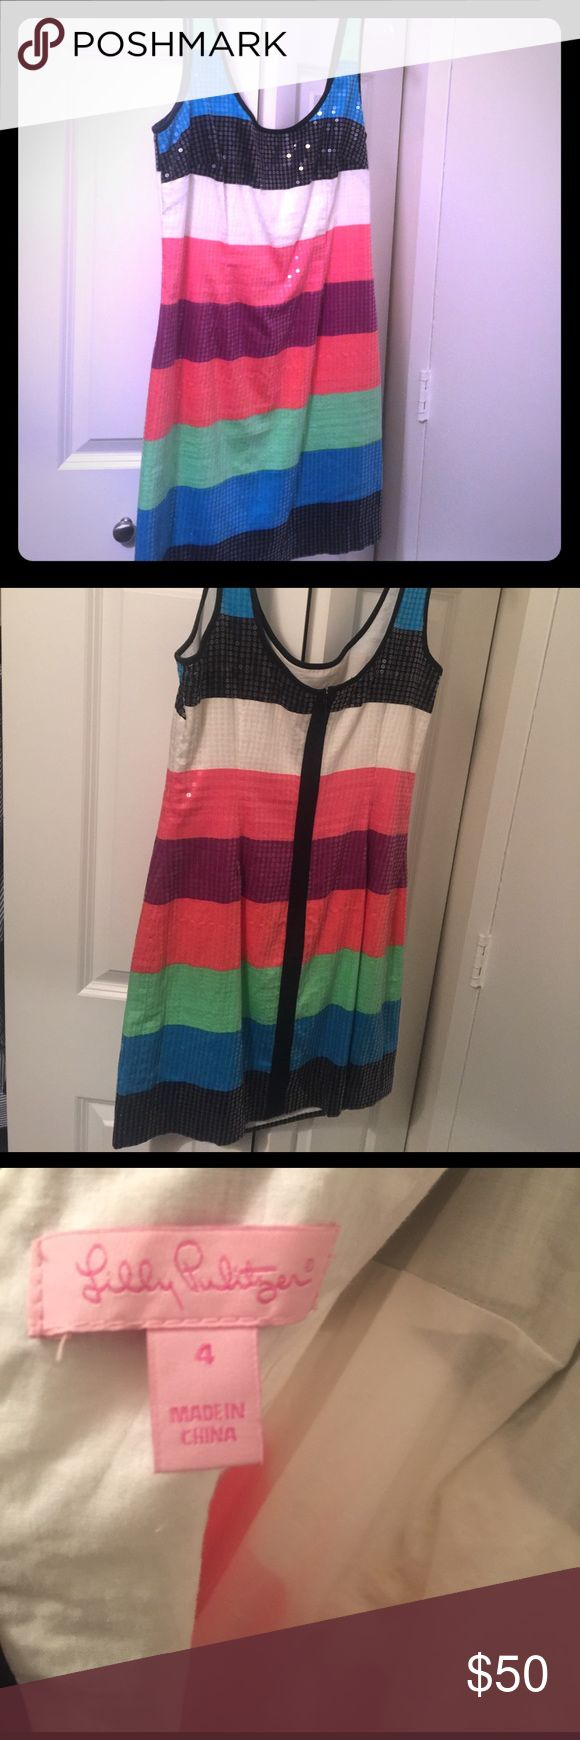 Lilly Delia cocktail dress size 4 Great cocktail dress, pairs well with nude or black heels. Wore for a few hours to a fraternity function and had dry cleaned. Could definitely fit a 4/6 S/M. Serious inquiries can make offers, comment and I will post to Merc for less Lilly Pulitzer Dresses Mini